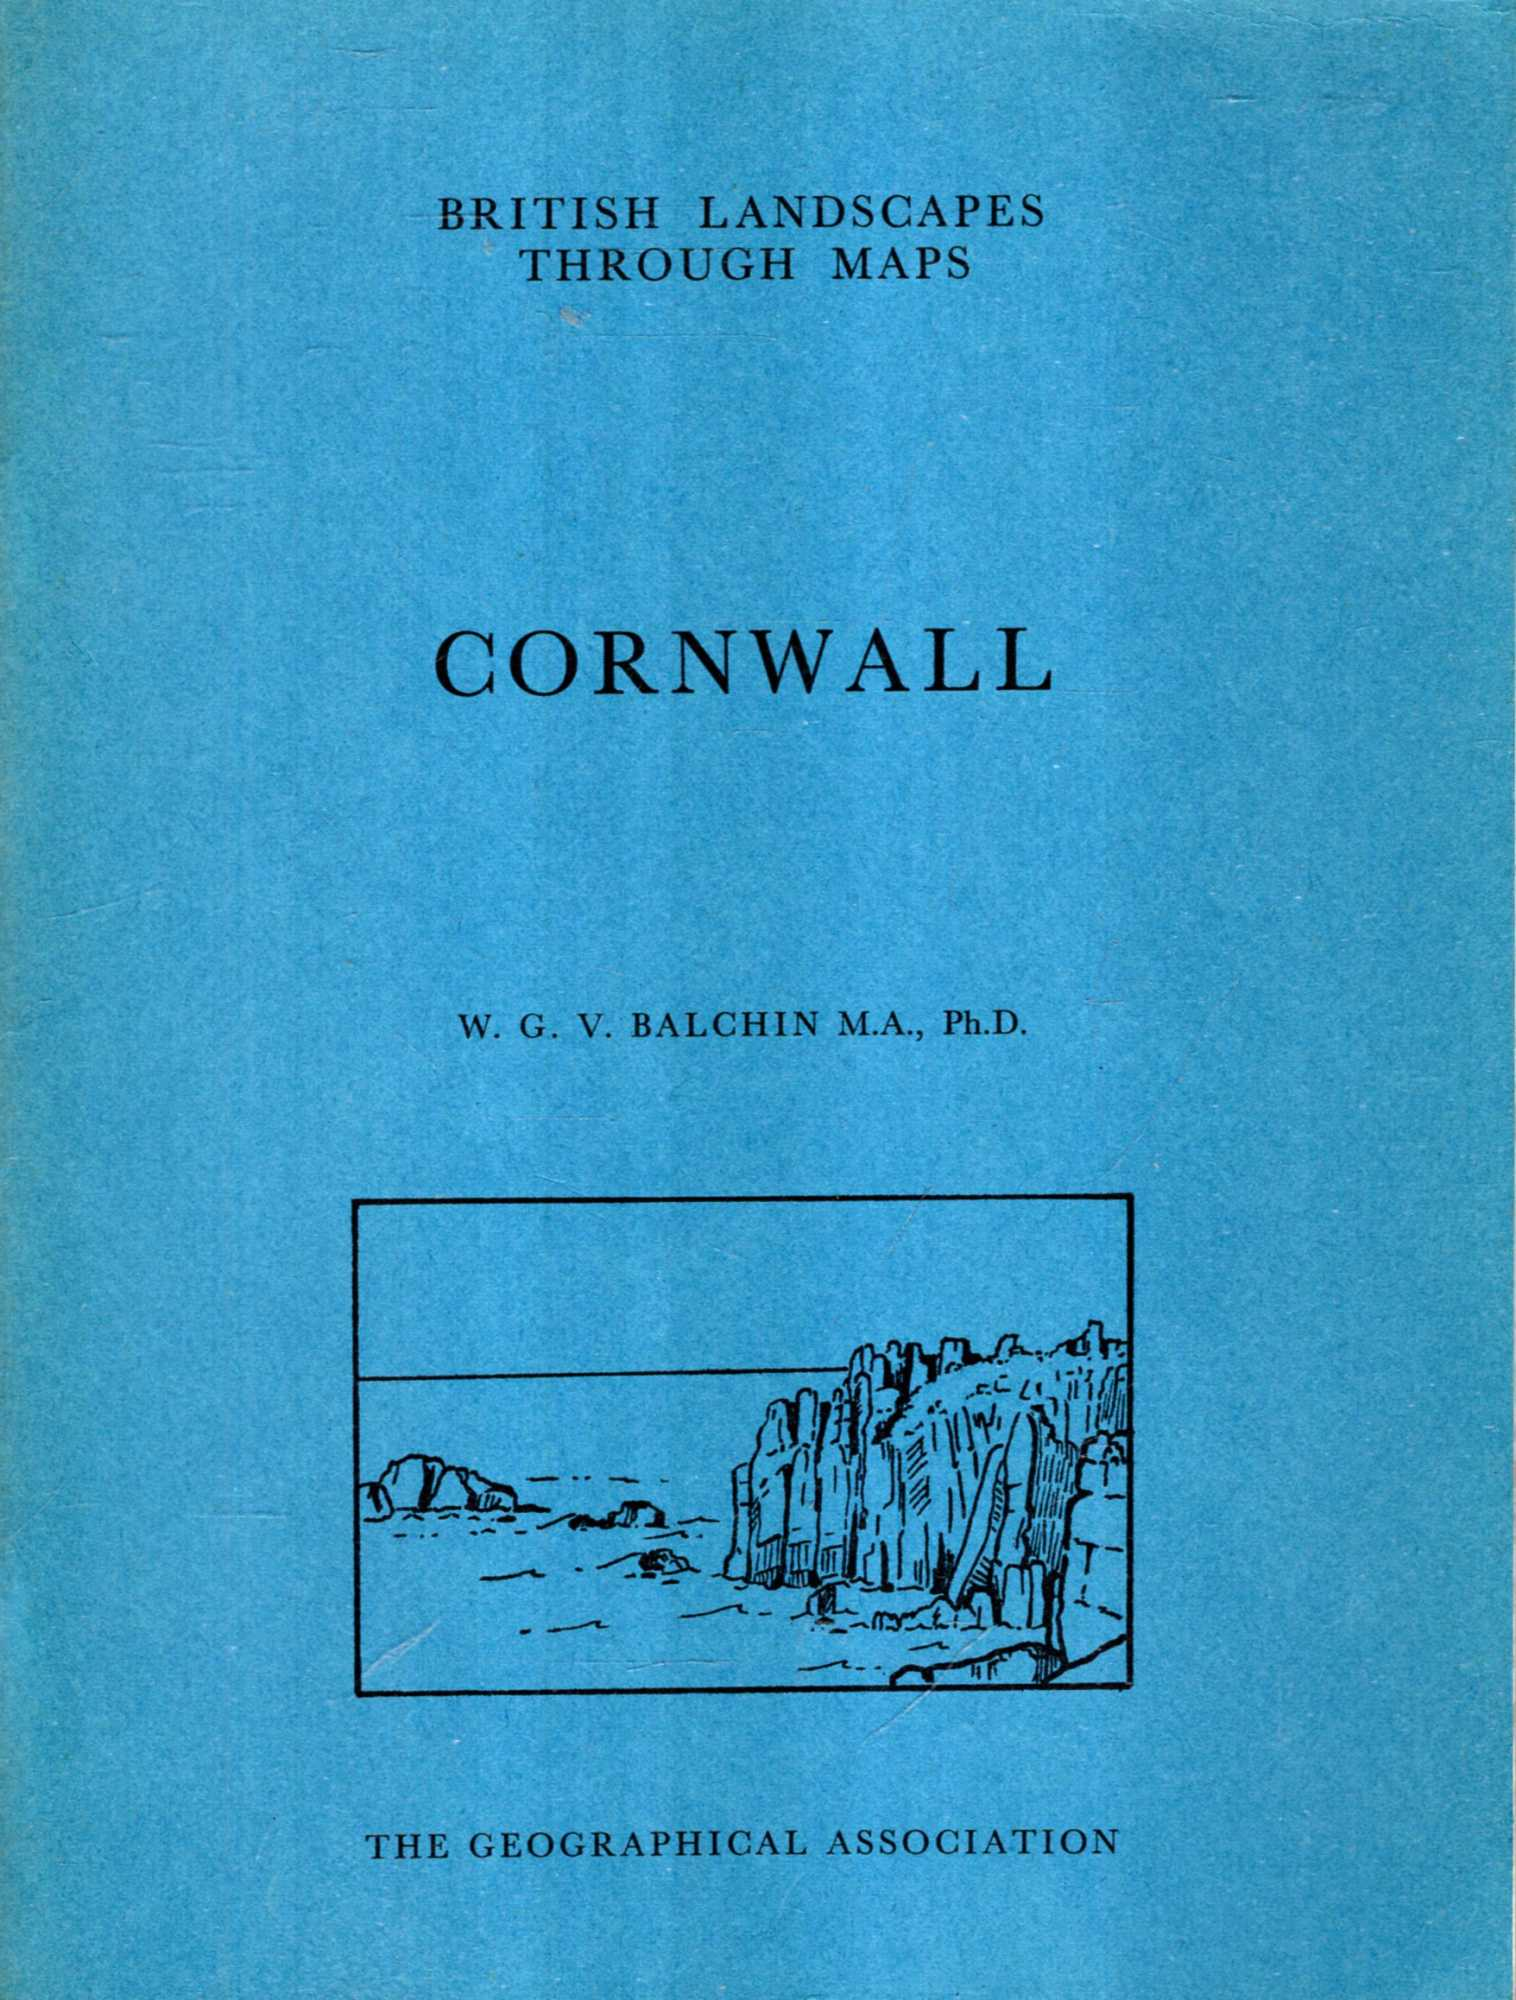 Image for British Landscapes Through Maps 9 : Cornwall, a description of the O.S. One-inch Sheets covering Cornwall